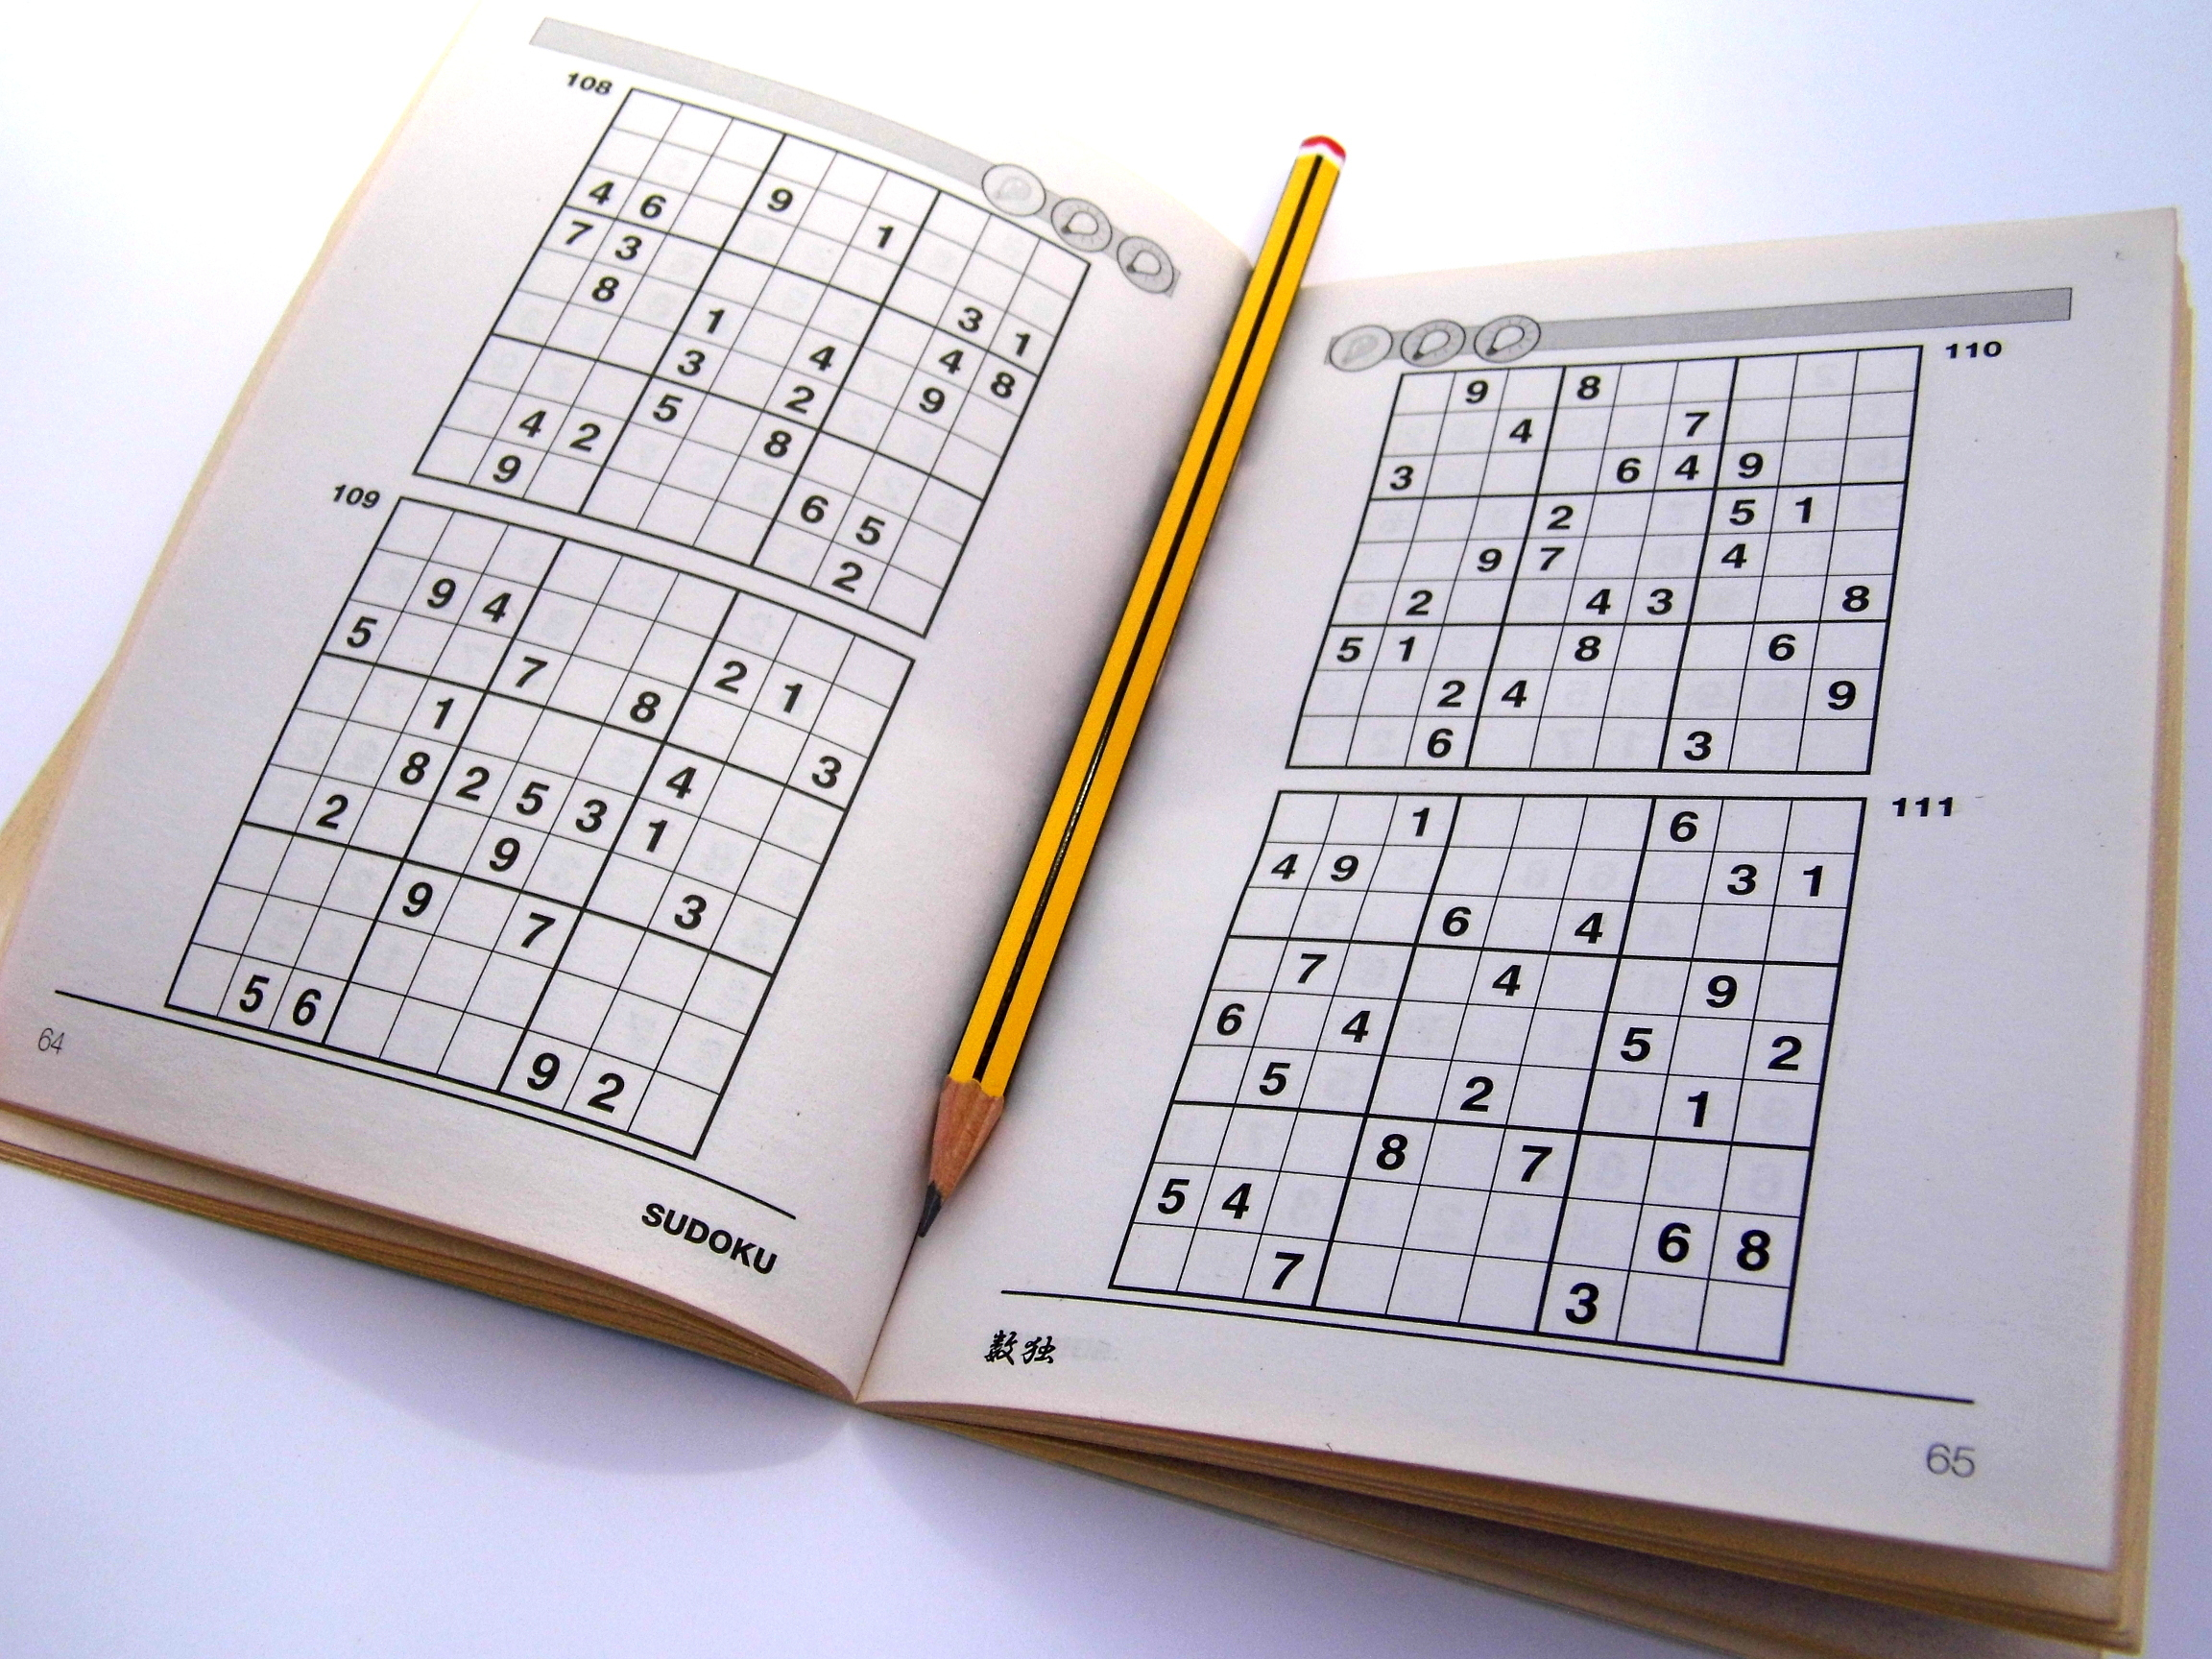 Archive Puzzles – 24 Hard Sudoku Puzzles – Books 1 To 10